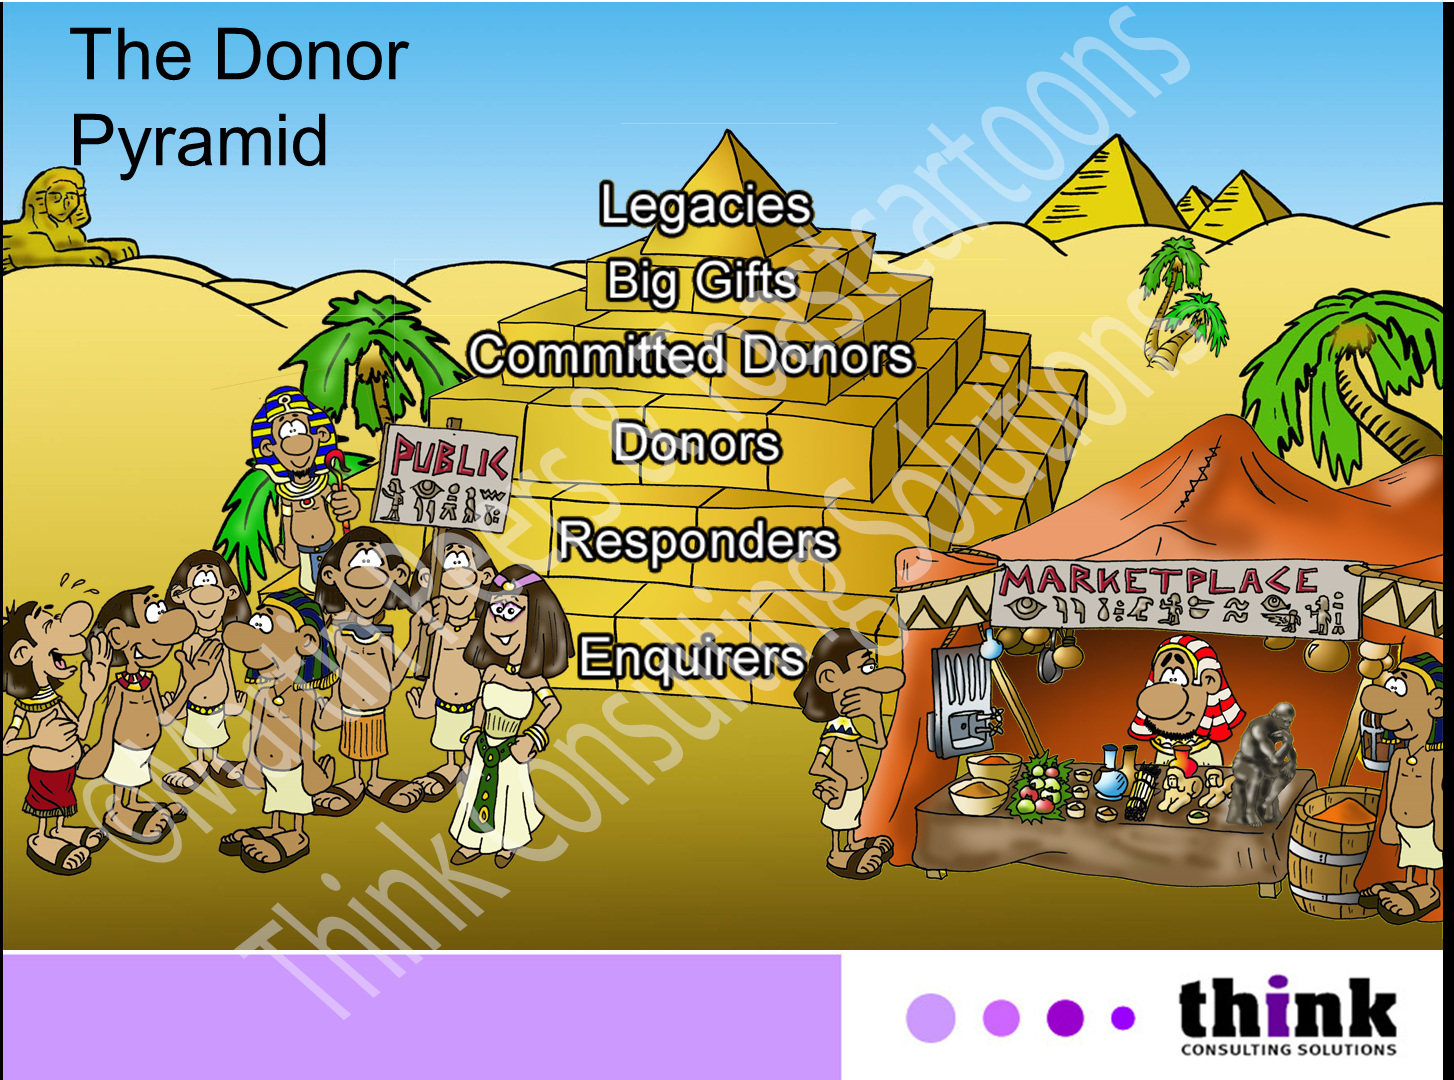 The Donor Pyramid